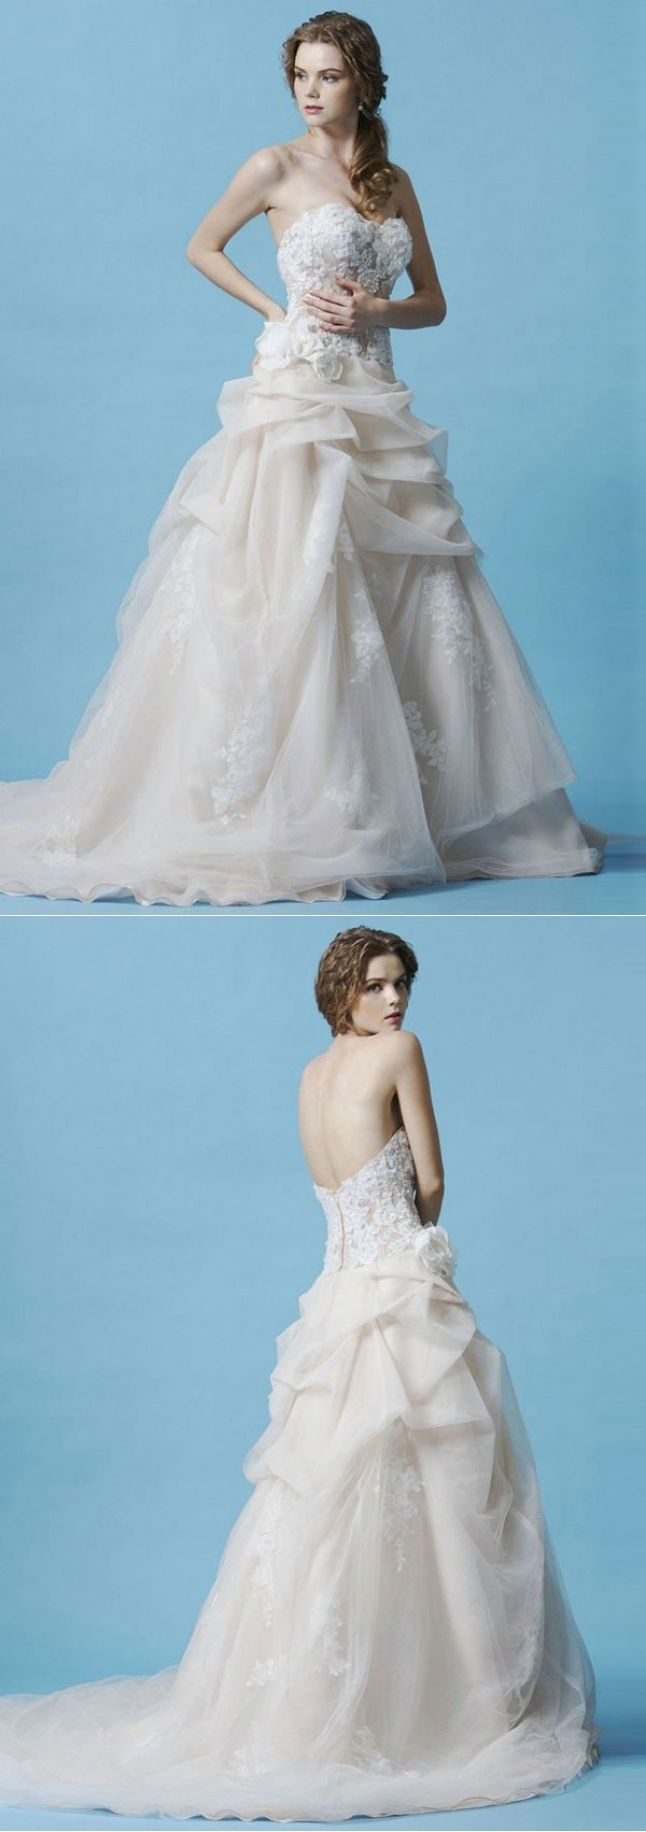 Awesome Wedding Dresses For Short Curvy Brides Pictures - All ...